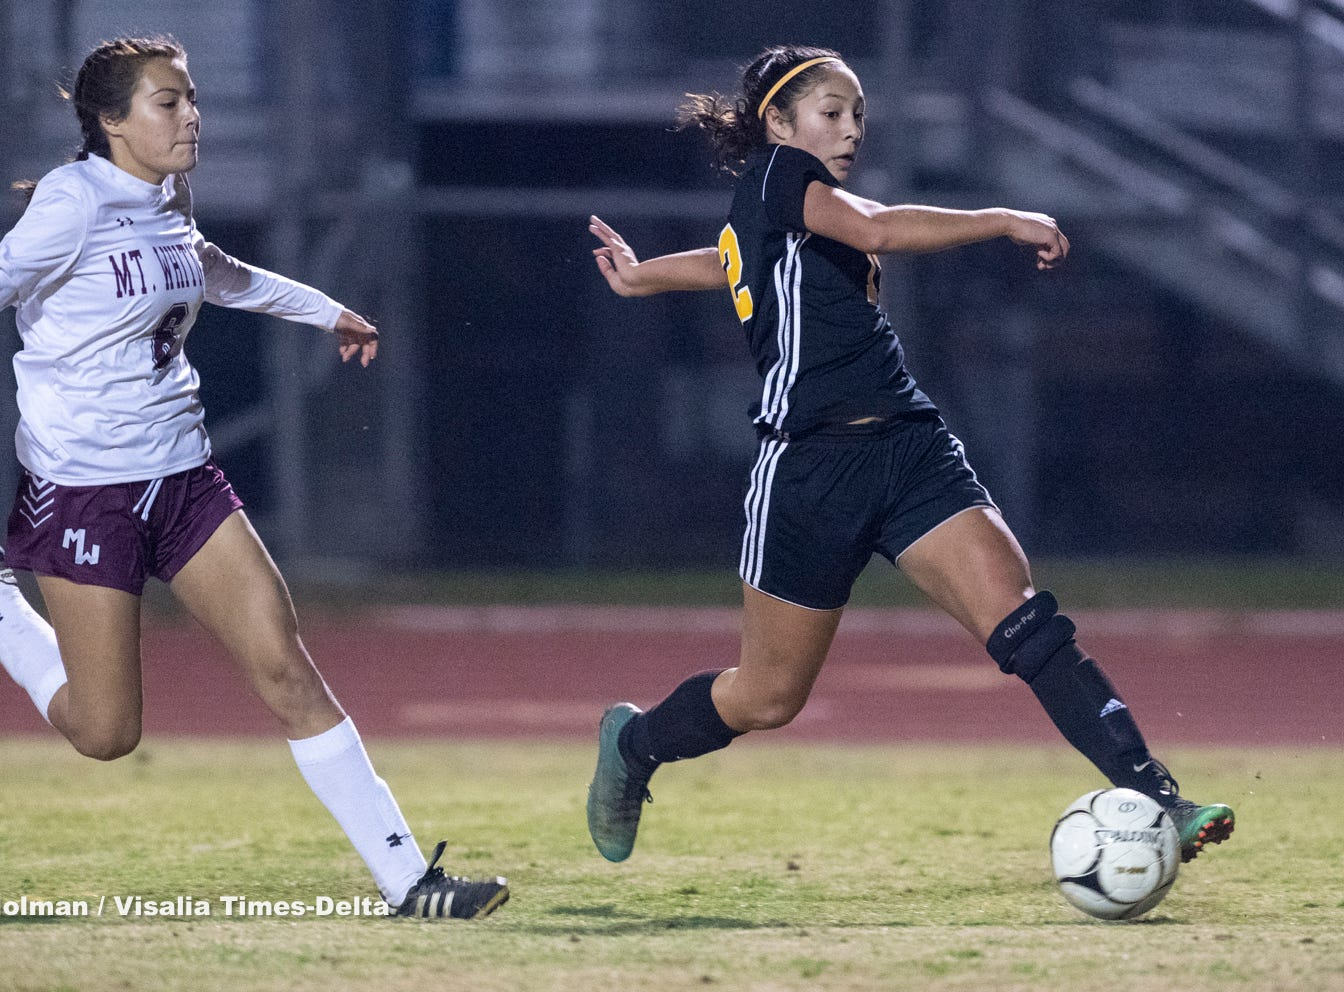 Golden West's	Serina Oceguera (12) attempts a shot on goal against Mt. Whitney in a girls soccer game on Wednesday, January 23, 2019.